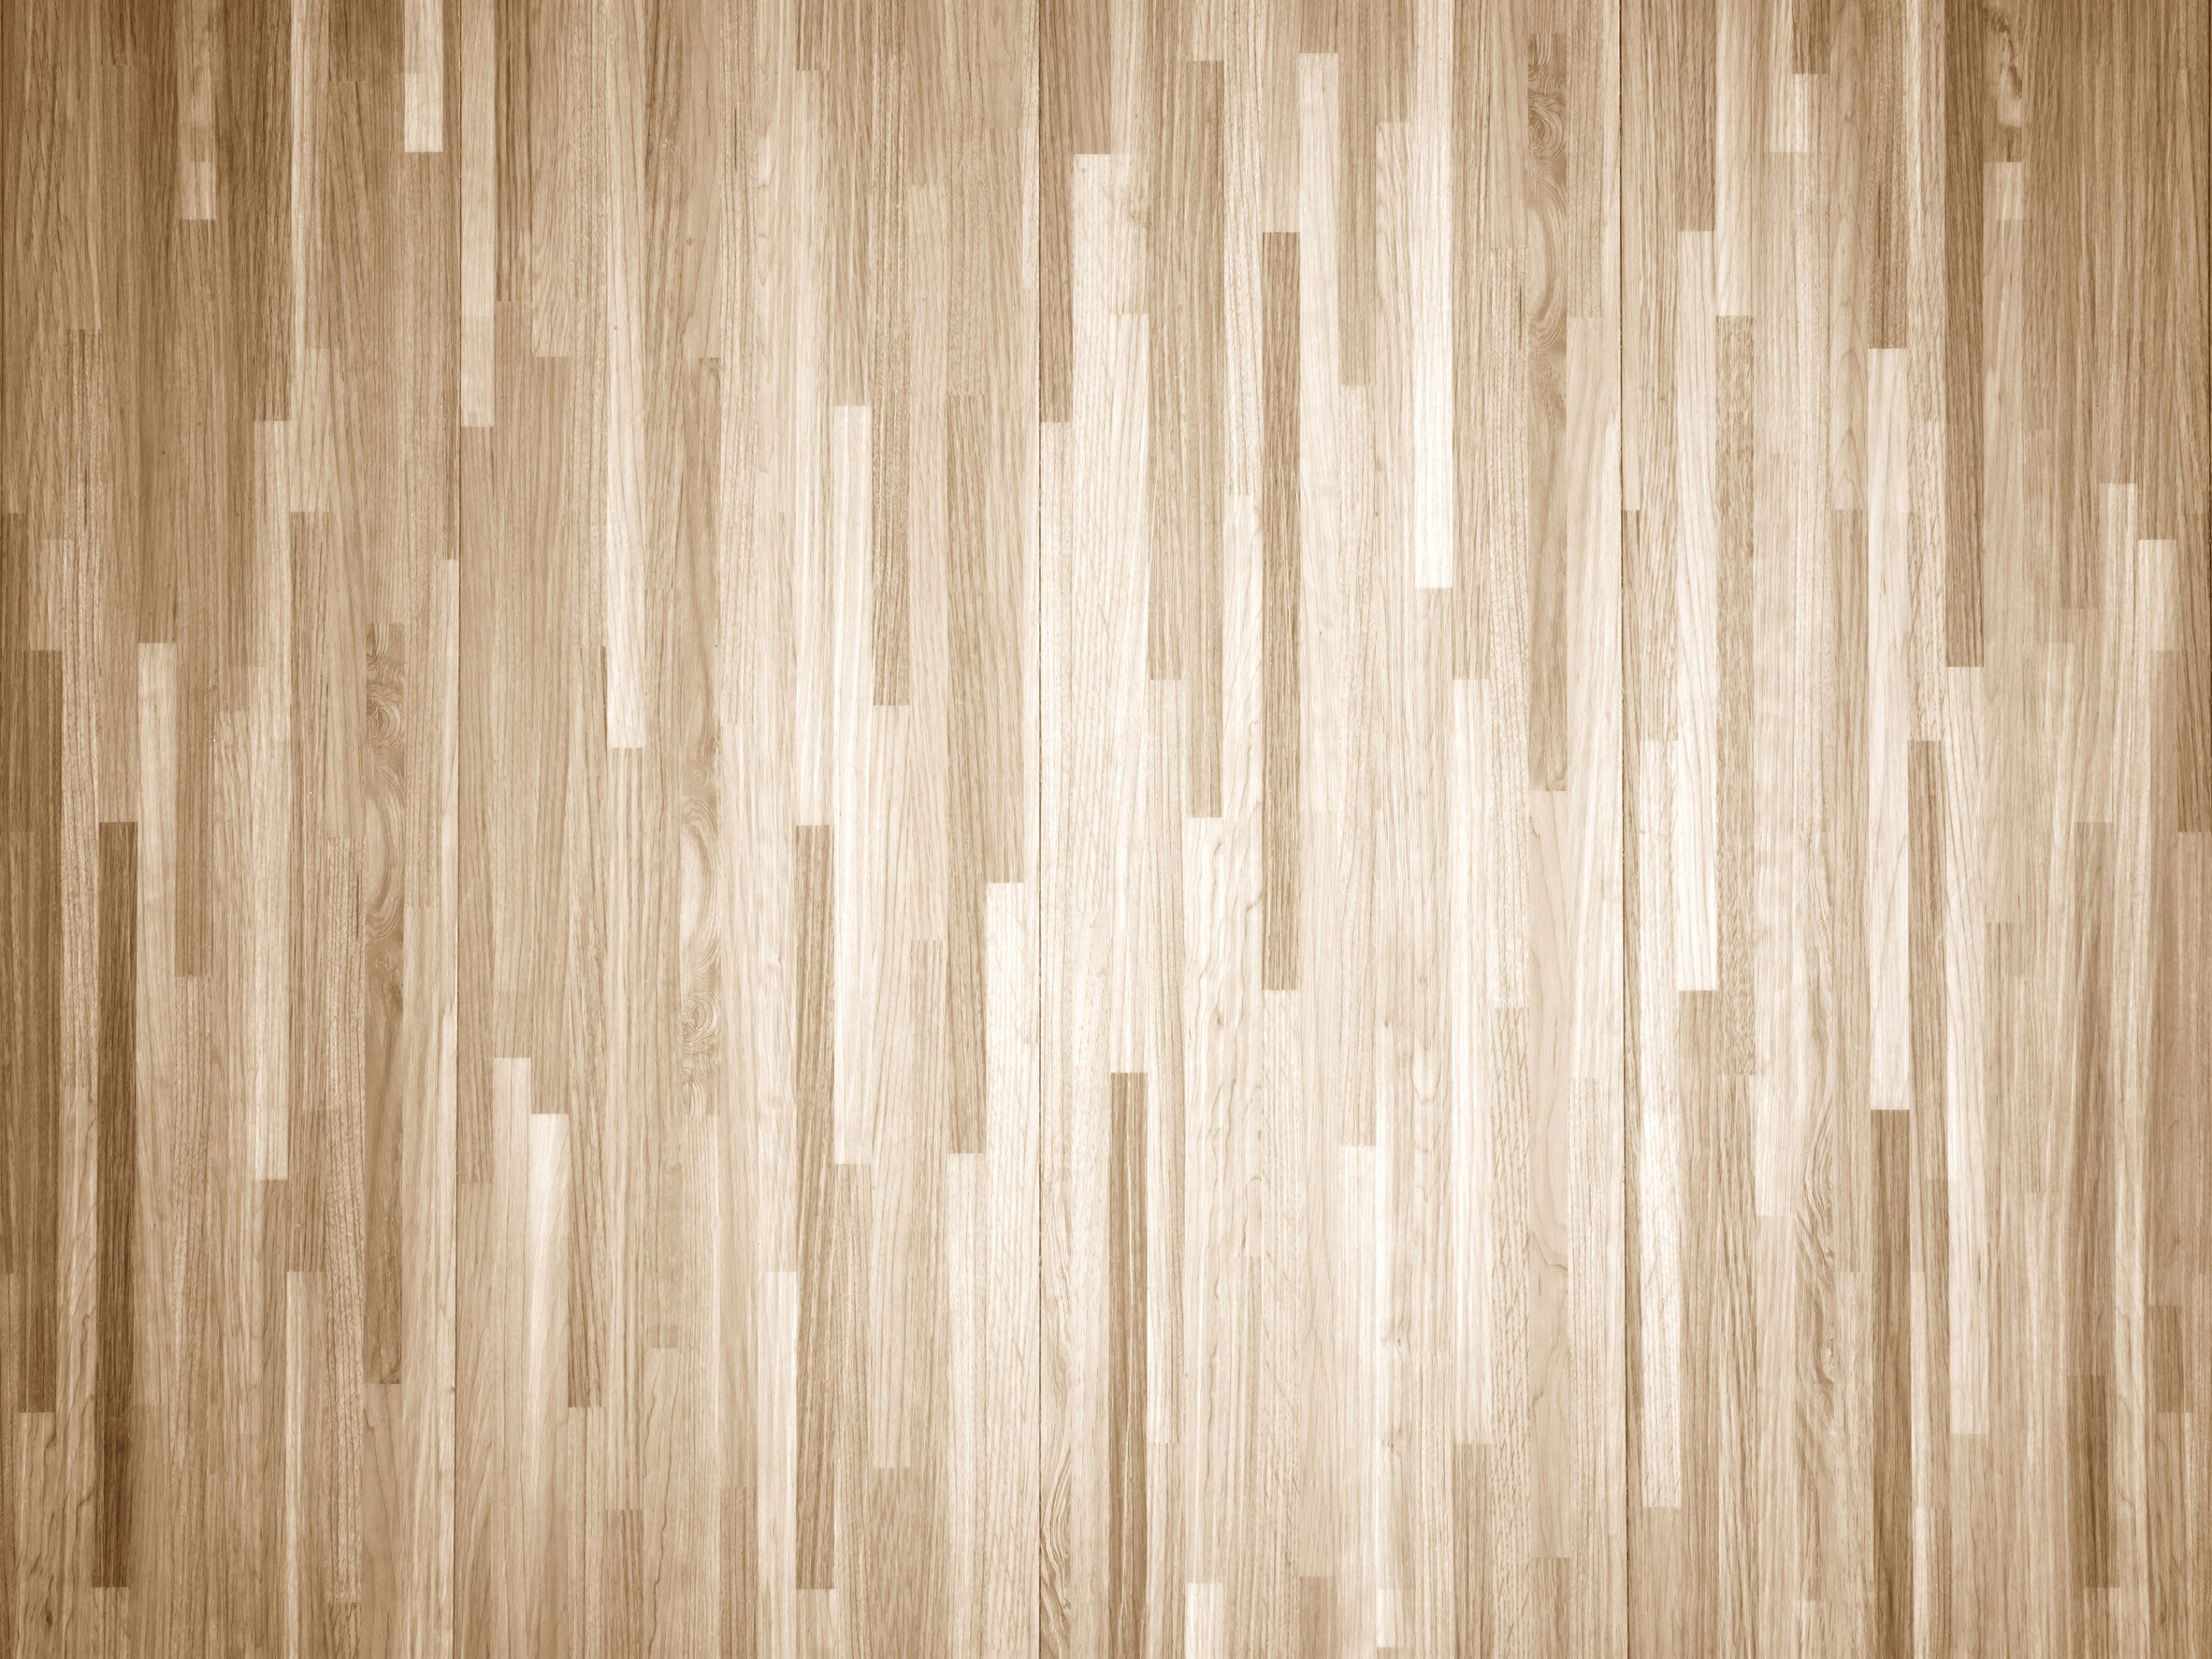 How To Chemically Strip Wood Floors  WoodFloorDoctorcom